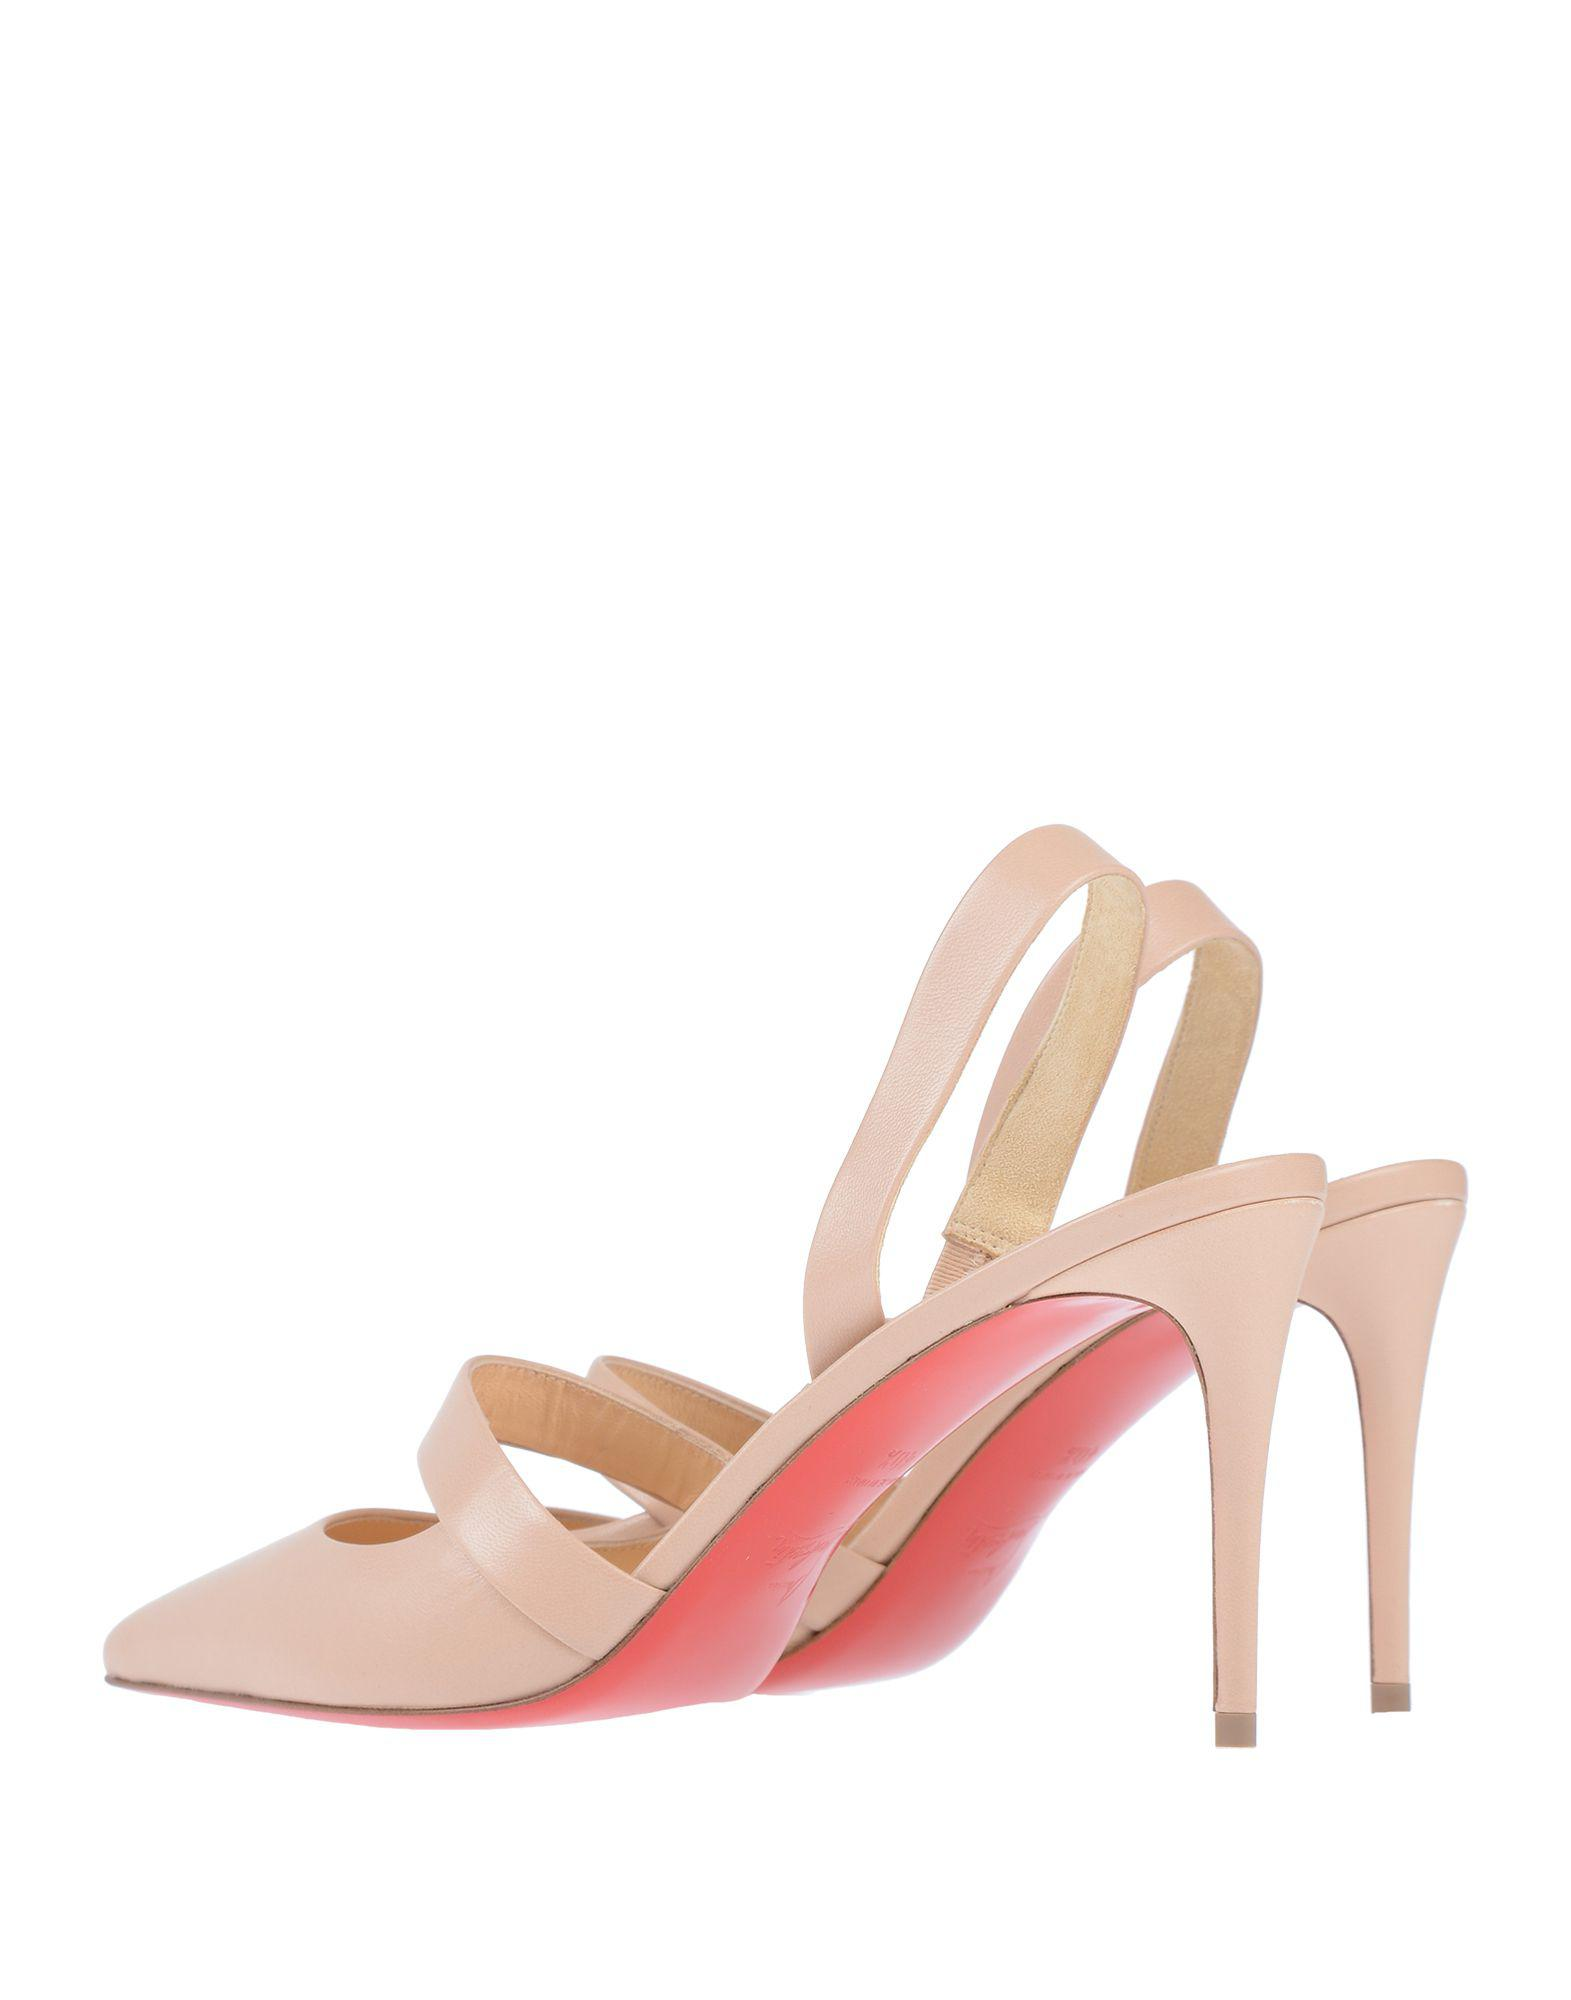 afd629b92c7d Lyst - Christian Louboutin Pump in Pink